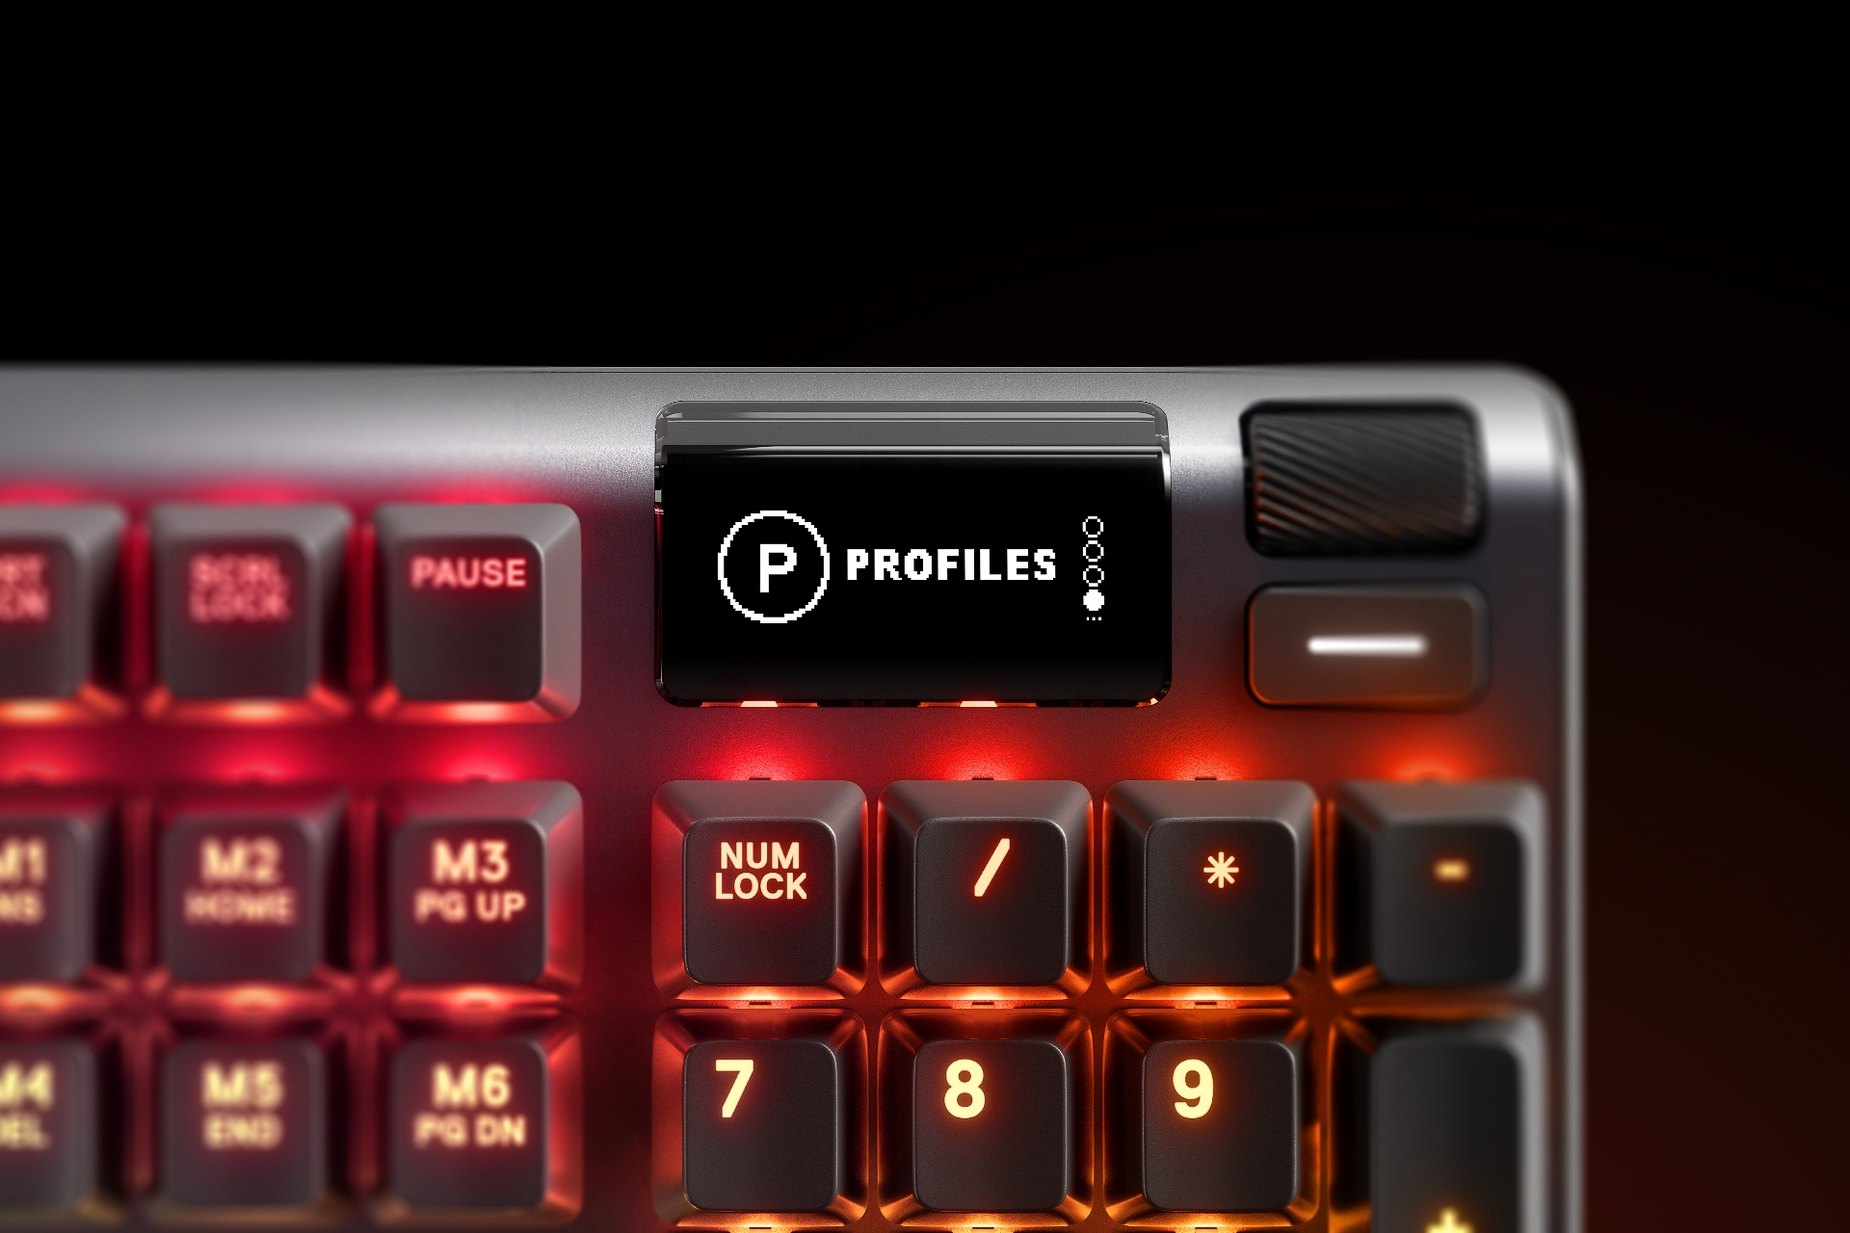 Zoomed in view of the multimedia and settings controls/volume roller on the Russian-Apex 7 (Red Switch) gaming keyboard